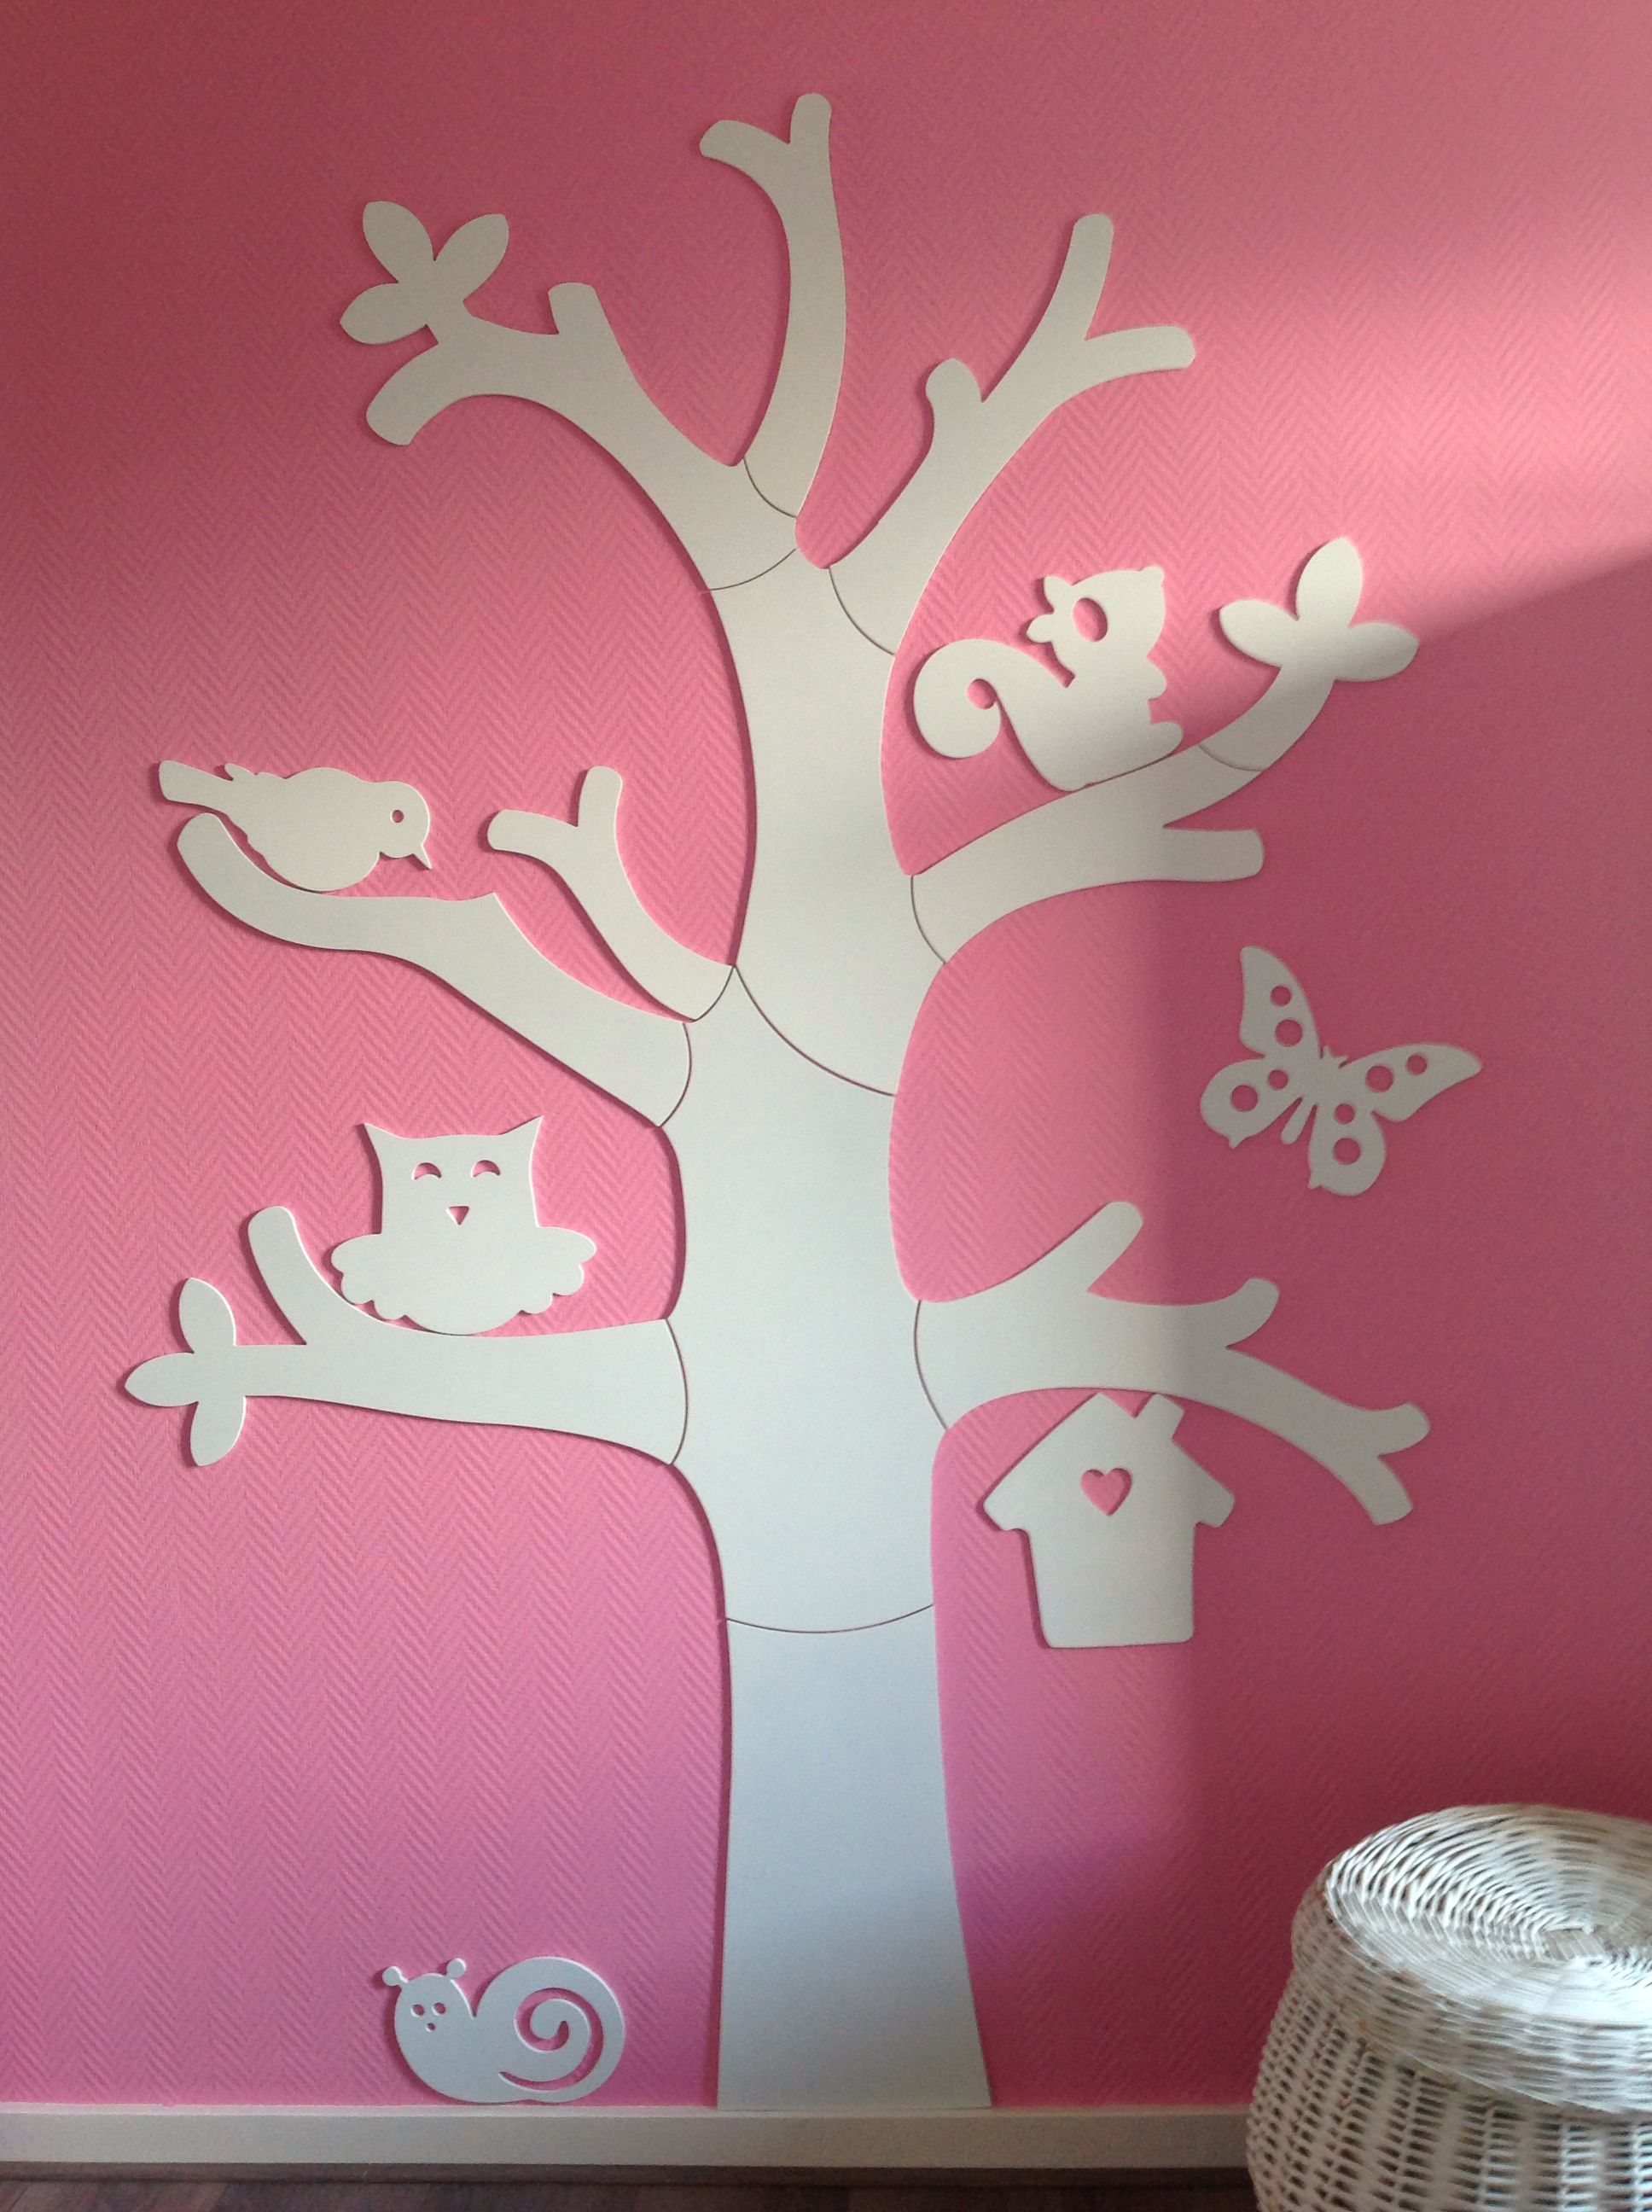 Decoratie Boom Kinderkamer.Xenos Boom Kinderkamer Kinderkamer In 2019 Nursery Girls